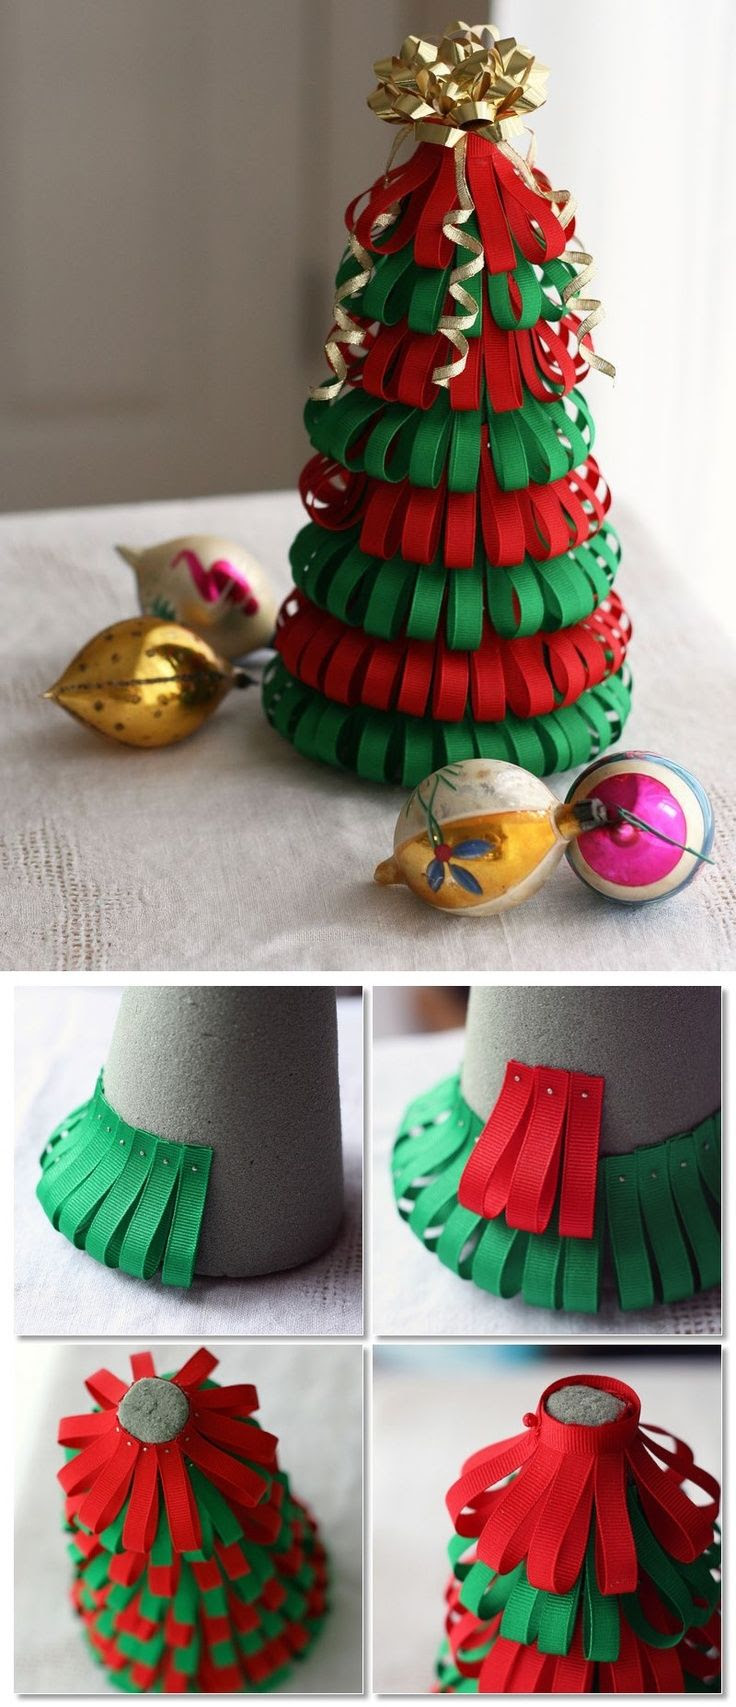 DIY Ribbon Christmas Tree Pictures, Photos, and Images for Facebook